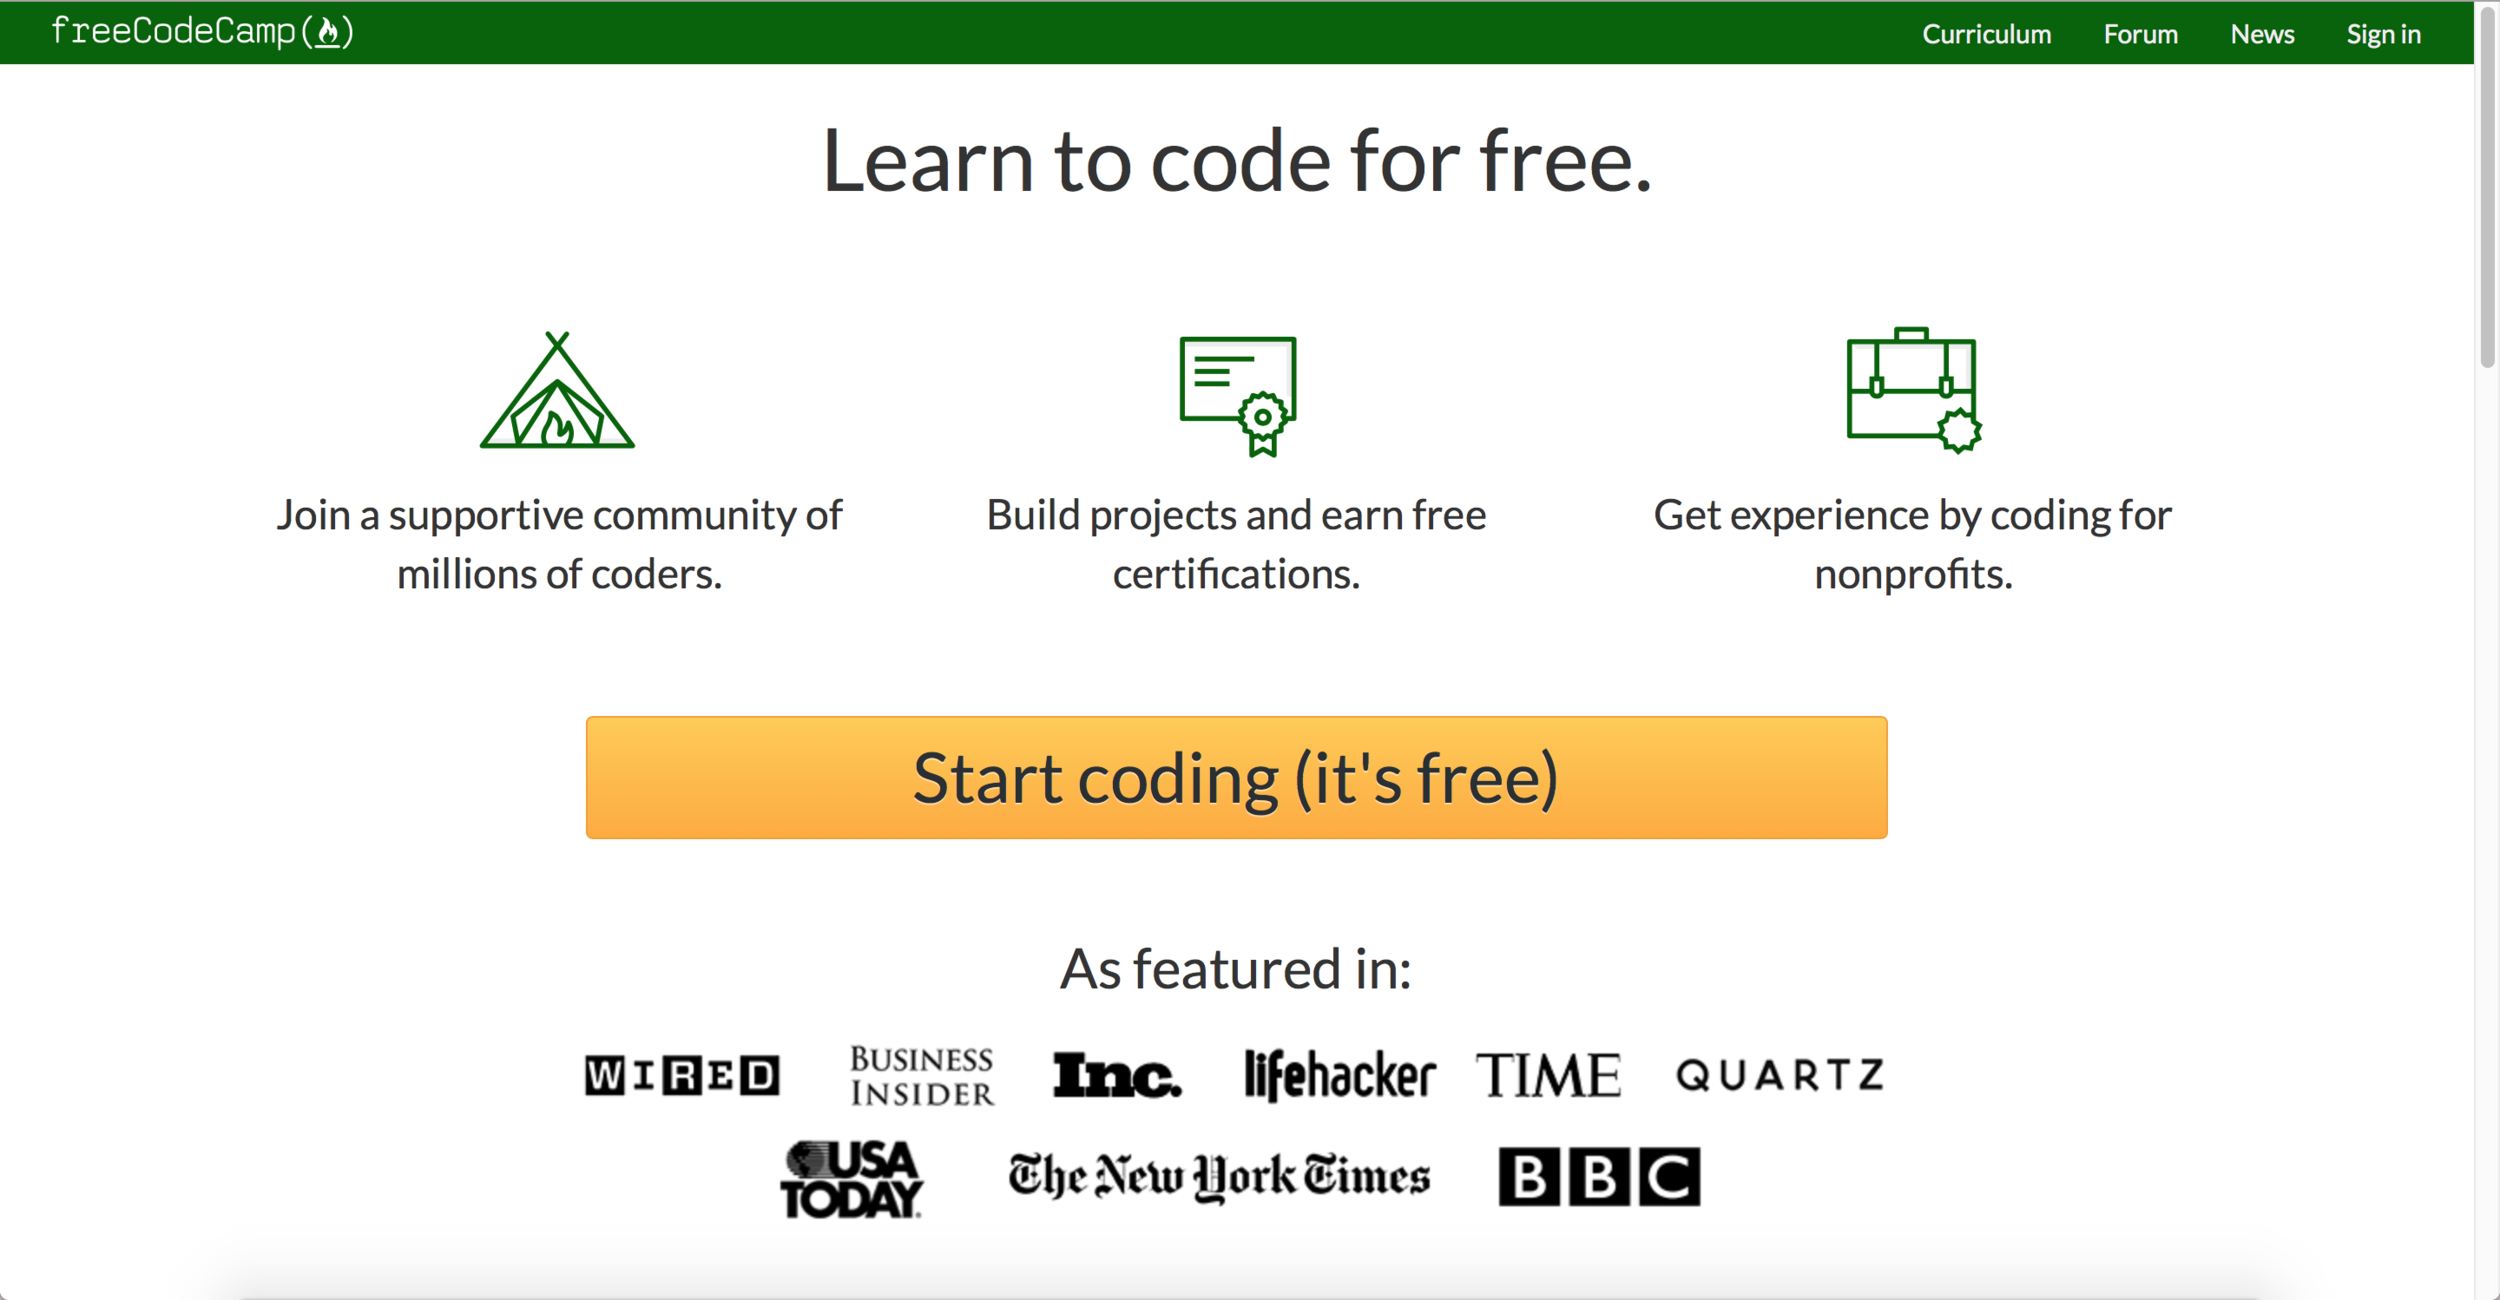 Screenshot of the FreeCodeCamp.org Homepage